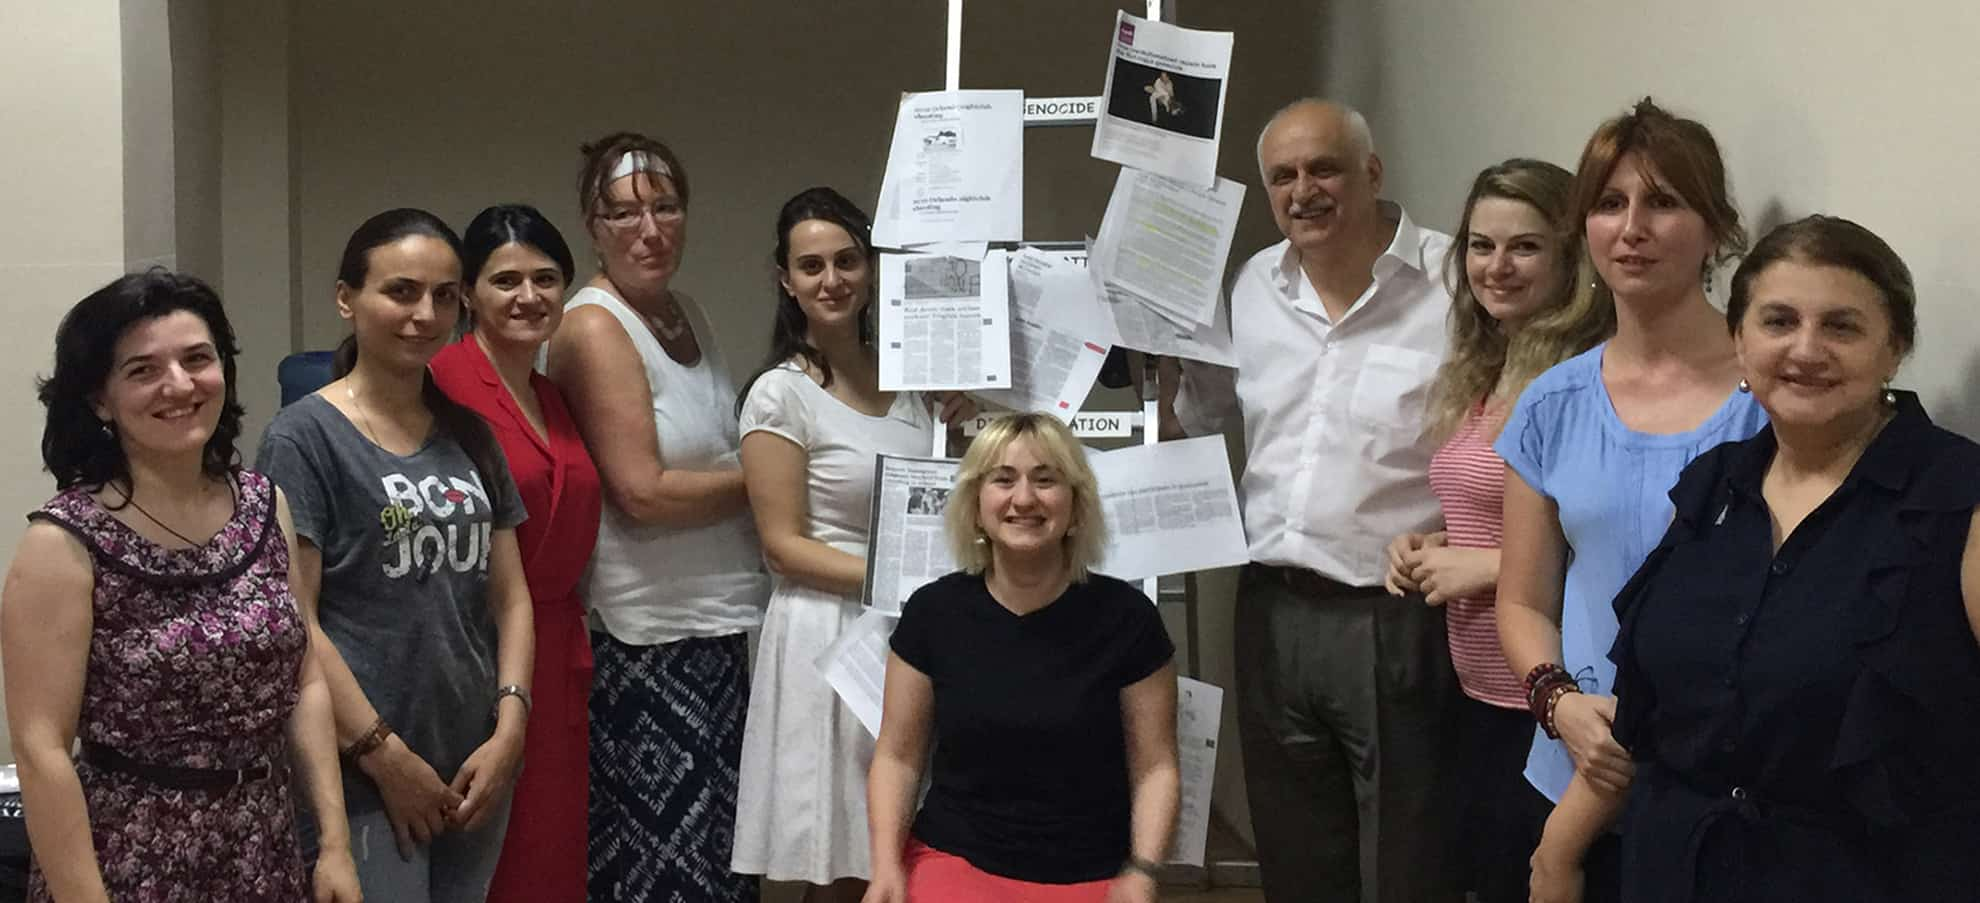 Teachers after a workshop based on the Ladder of Prejudice: From Name Calling to Genocide.